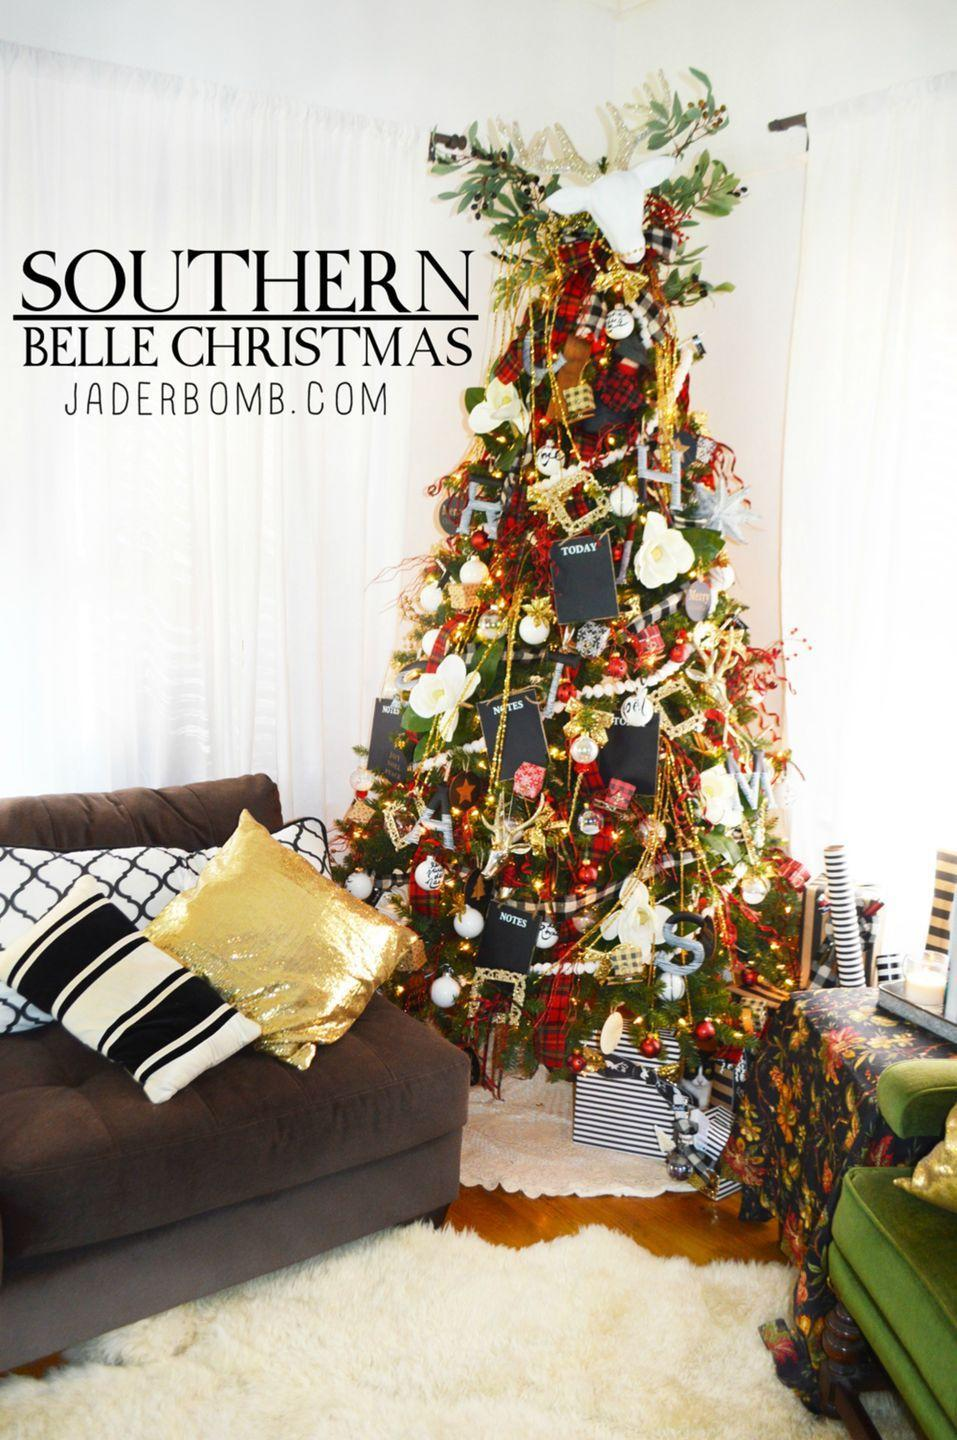 """<p>Olive branches, gorgeous magnolias, glass glitter on frames, plaid ribbon, and cotton balls transform this tree into an evergreen Southern Belle.</p><p><em><strong>Get the tutorial at </strong><strong><a href=""""https://jaderbomb.com/?s=southern+belle+christmas+tree"""" rel=""""nofollow noopener"""" target=""""_blank"""" data-ylk=""""slk:Jader Bomb"""" class=""""link rapid-noclick-resp"""">Jader Bomb</a>.</strong></em></p><p><a class=""""link rapid-noclick-resp"""" href=""""https://www.amazon.com/Berwick-2-Inch-50-Yard-Clarkston-Ribbon/dp/B0091SC1AO/?tag=syn-yahoo-20&ascsubtag=%5Bartid%7C10070.g.2025%5Bsrc%7Cyahoo-us"""" rel=""""nofollow noopener"""" target=""""_blank"""" data-ylk=""""slk:BUY PLAID RIBBON"""">BUY PLAID RIBBON</a></p>"""